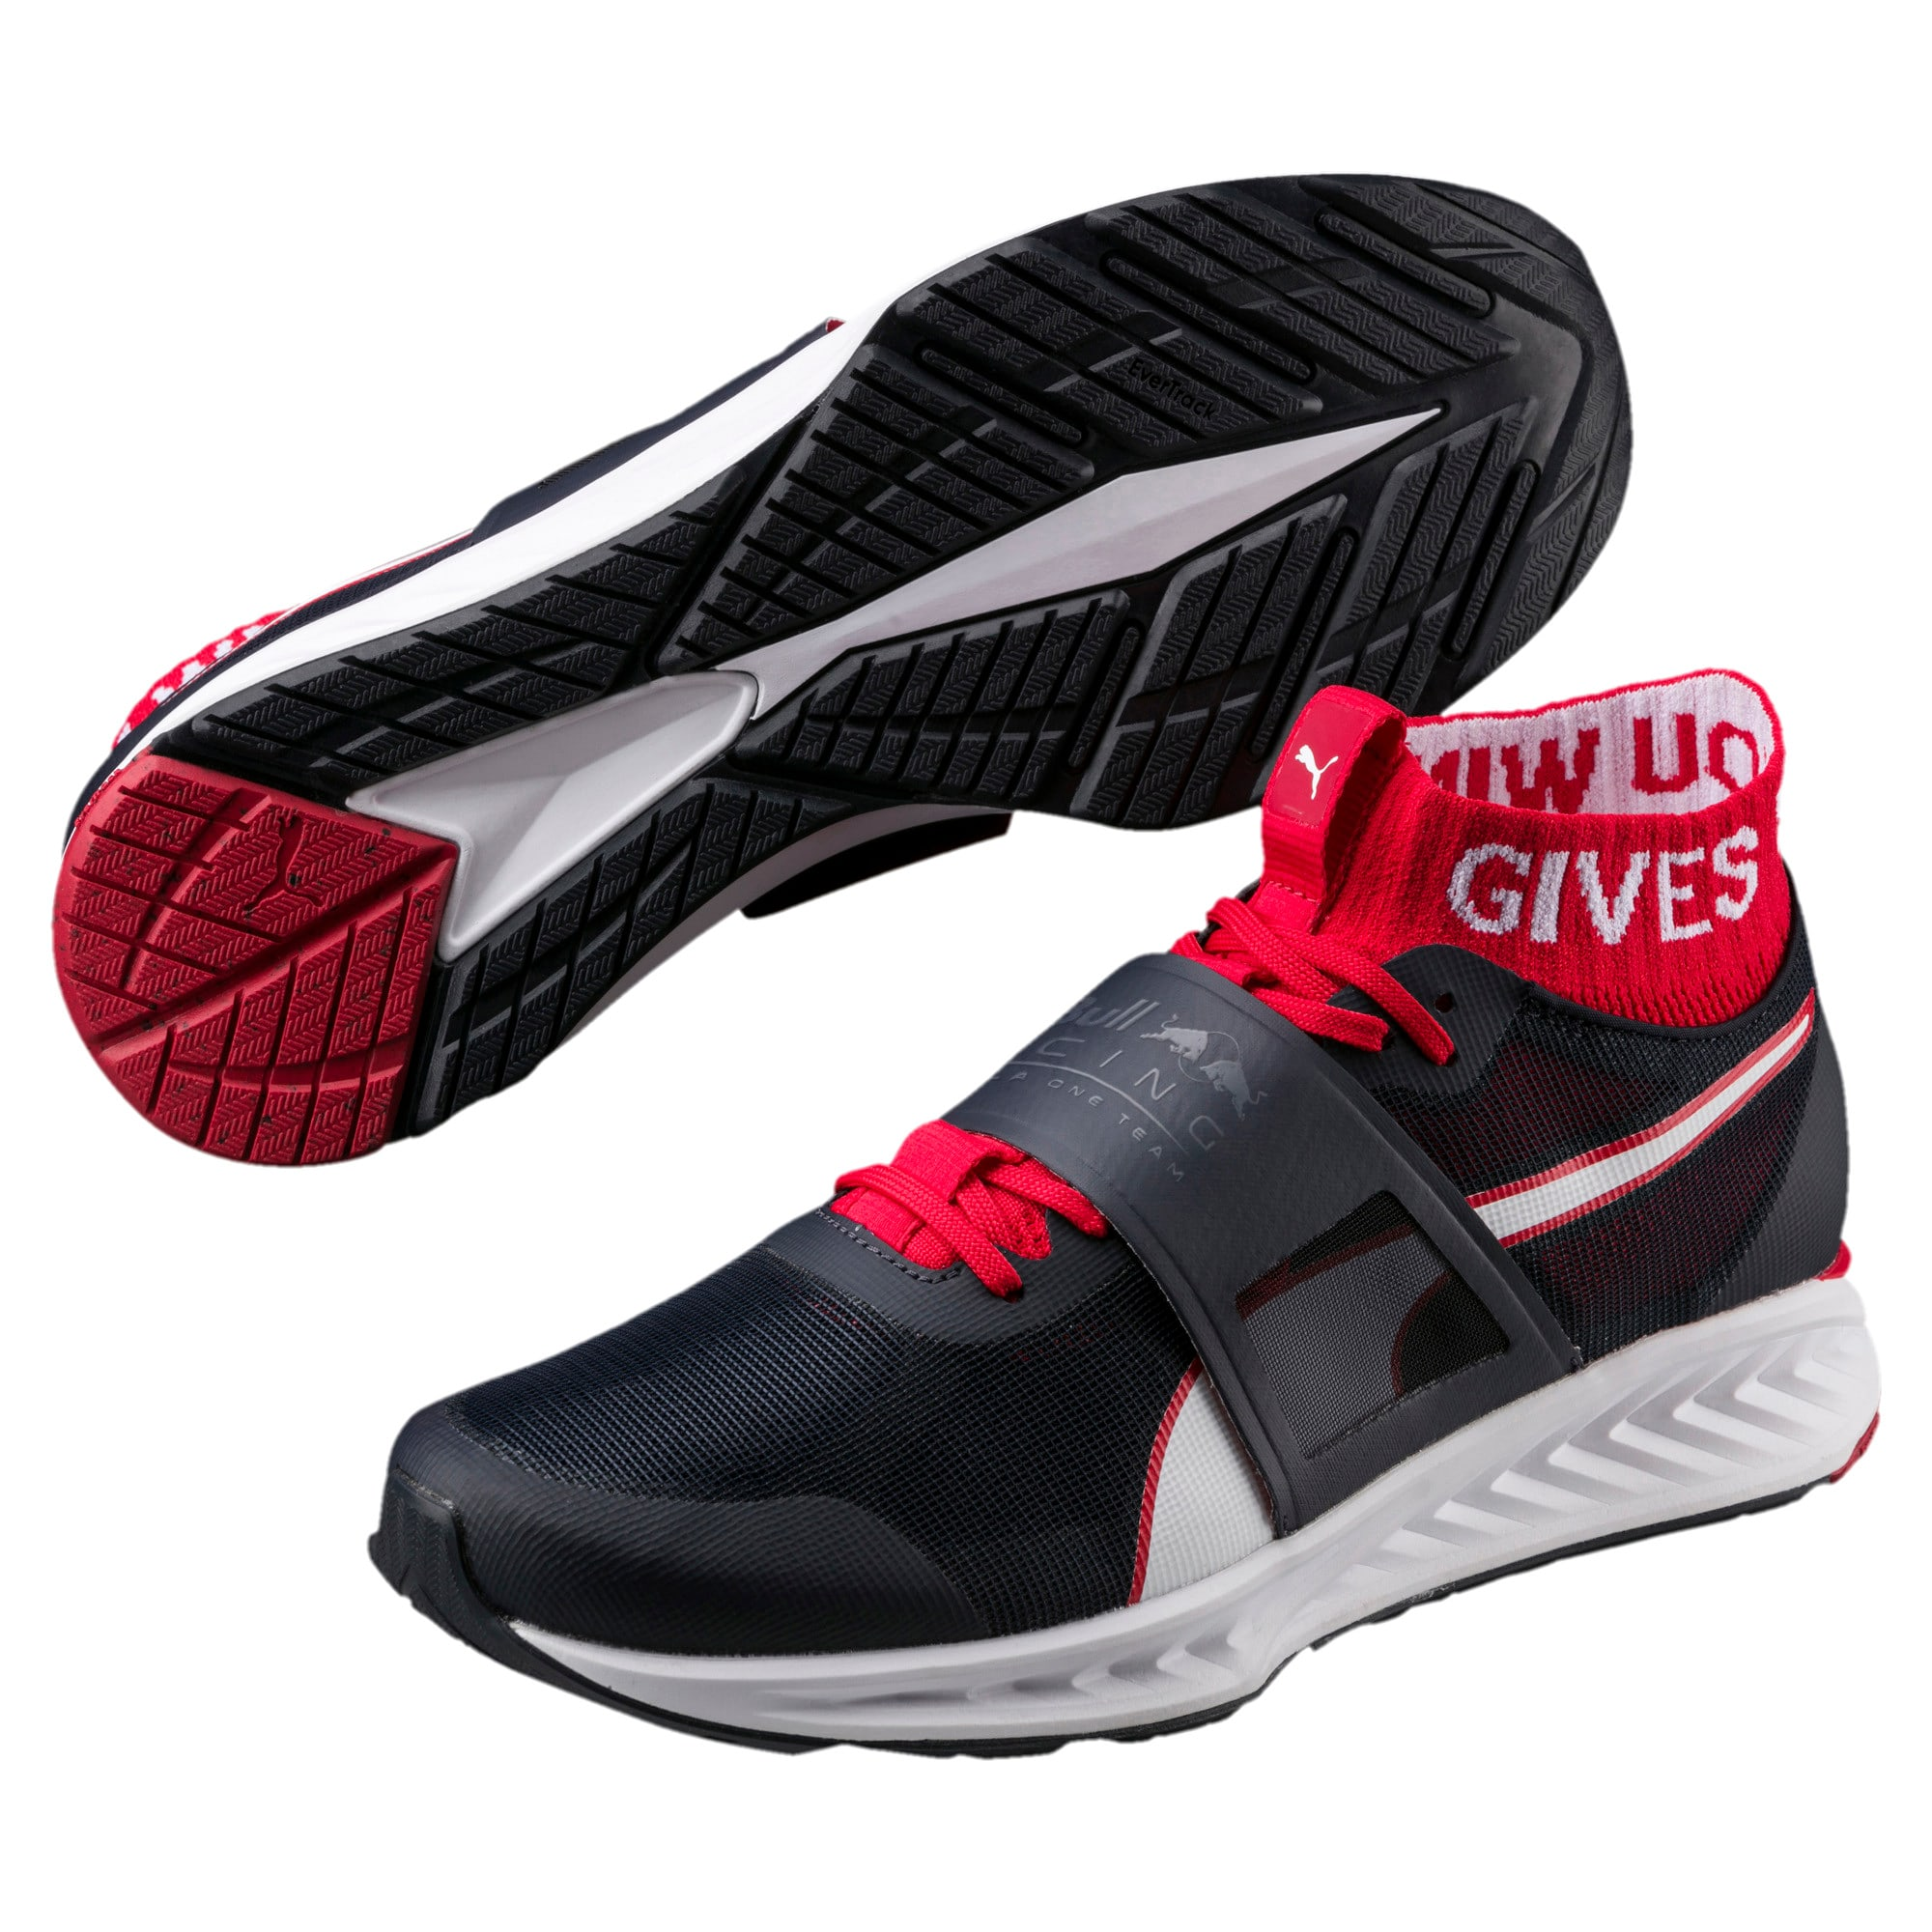 Thumbnail 2 of Red Bull Racing Mechs Ignite V3 Men's Training Shoes, NIGHT SKY-White-Chinese Red, medium-IND